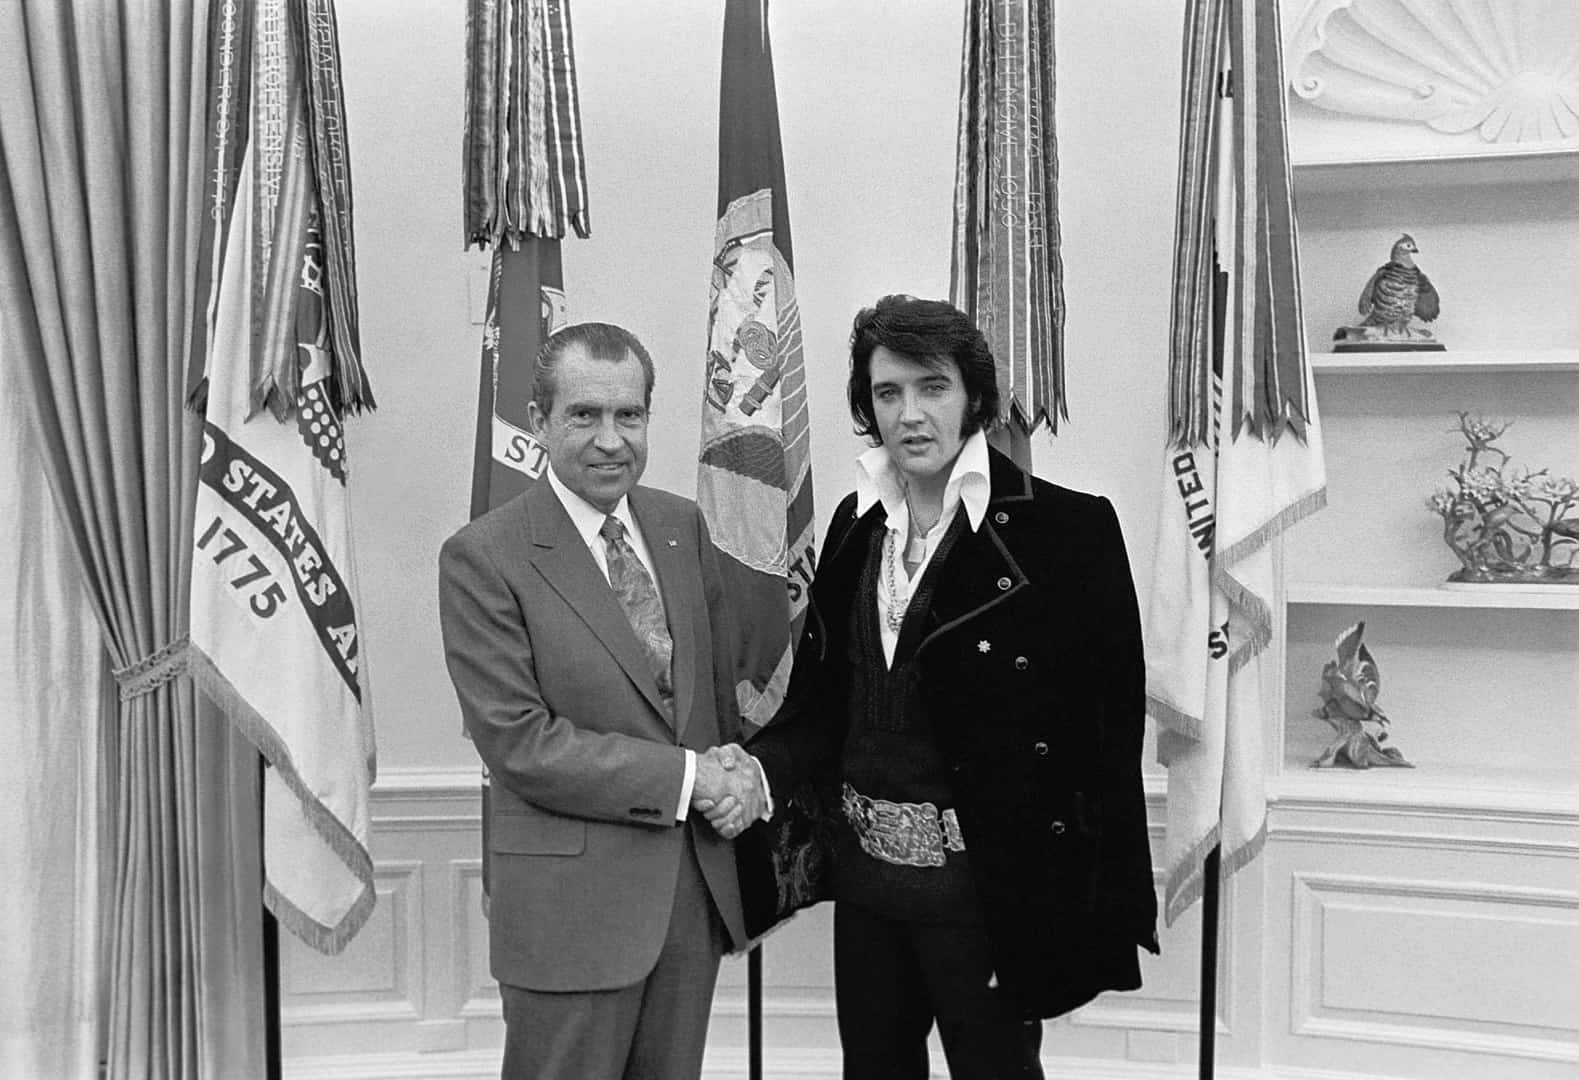 Elvis Presley meets President Nixon, music facts